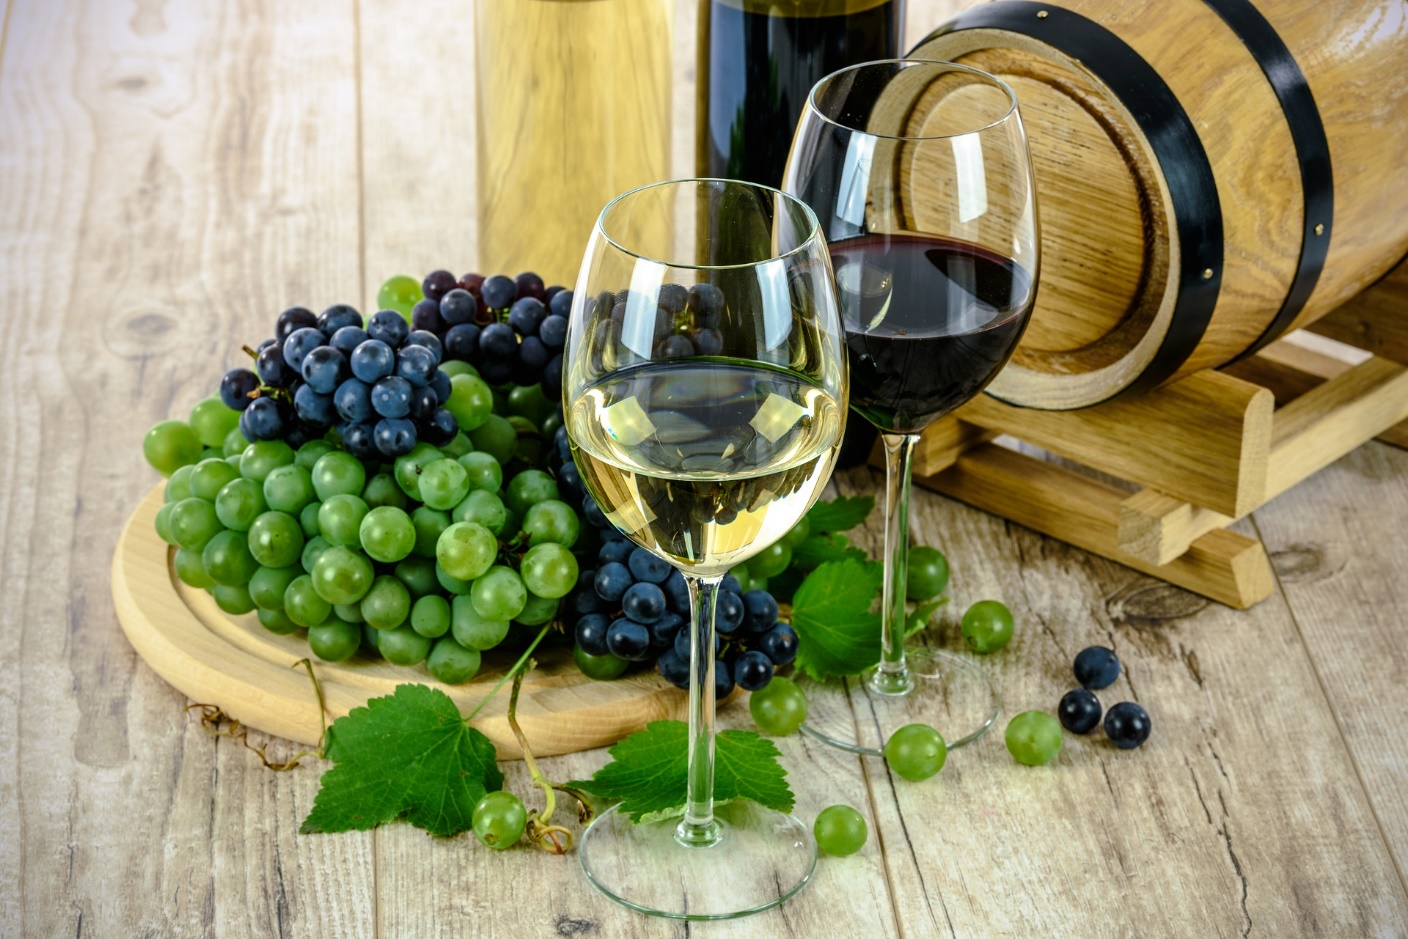 DIY - How To Make Fruit Wine At Home